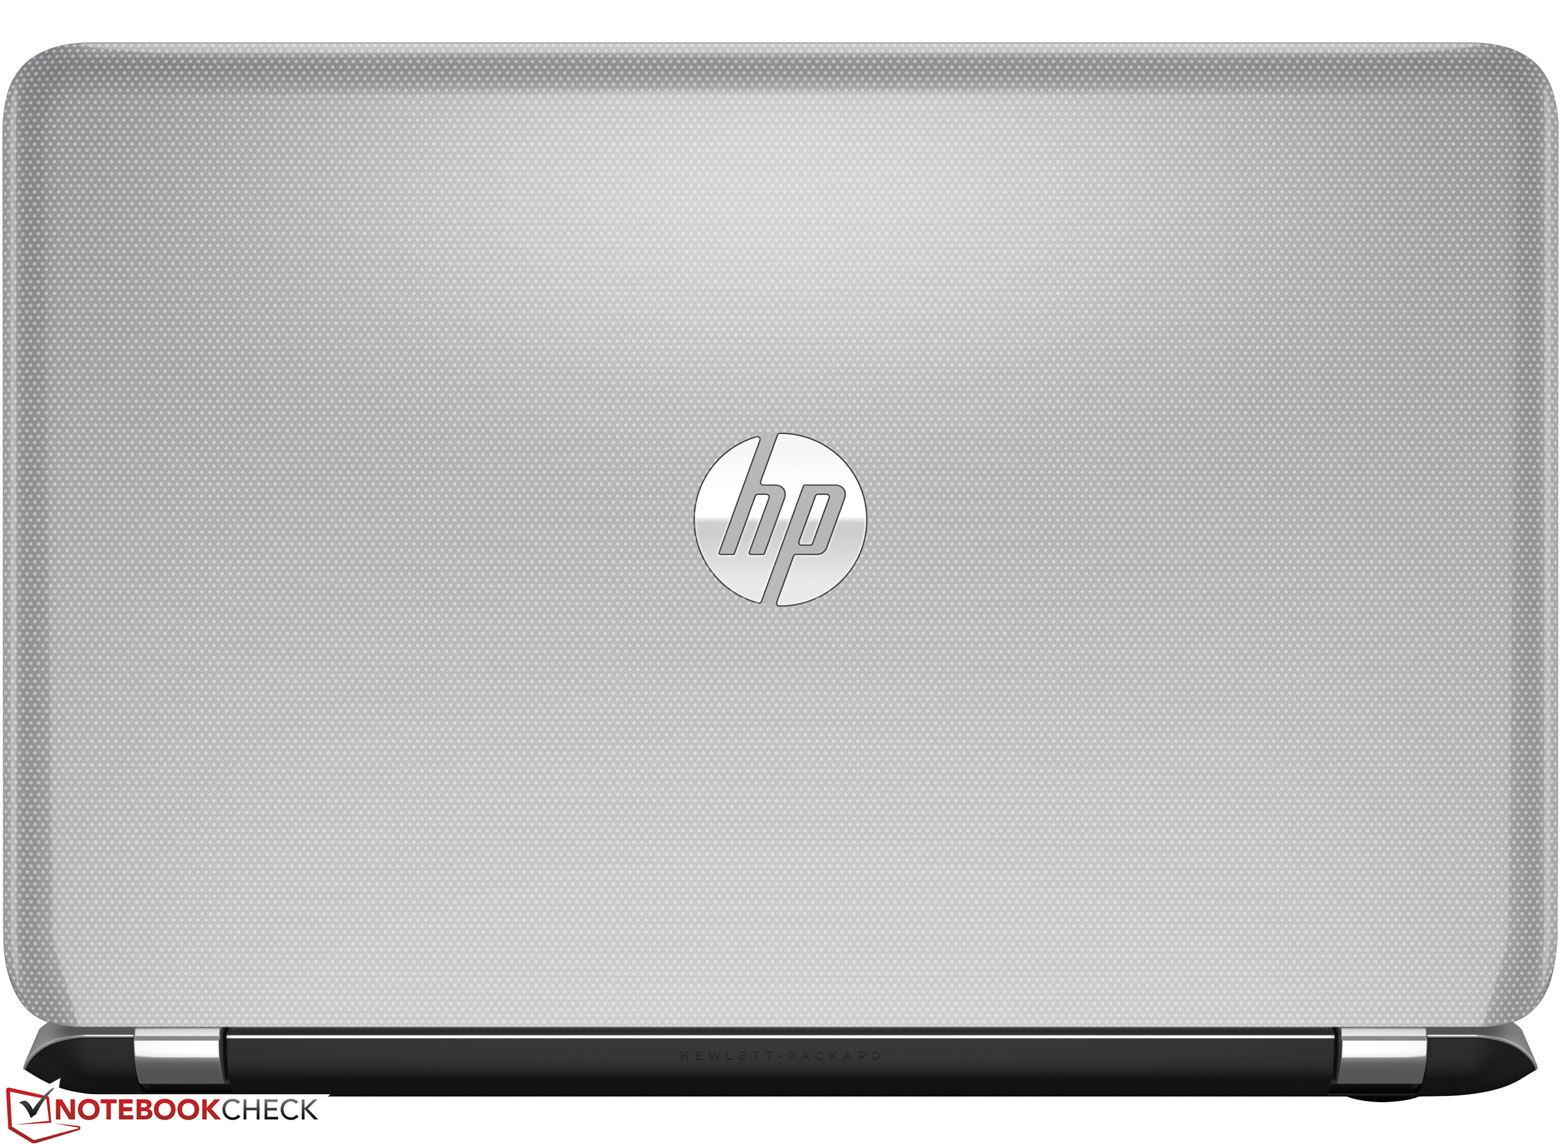 Hp pavilion g6-1b79dx notebook pc driver downloads | hp.